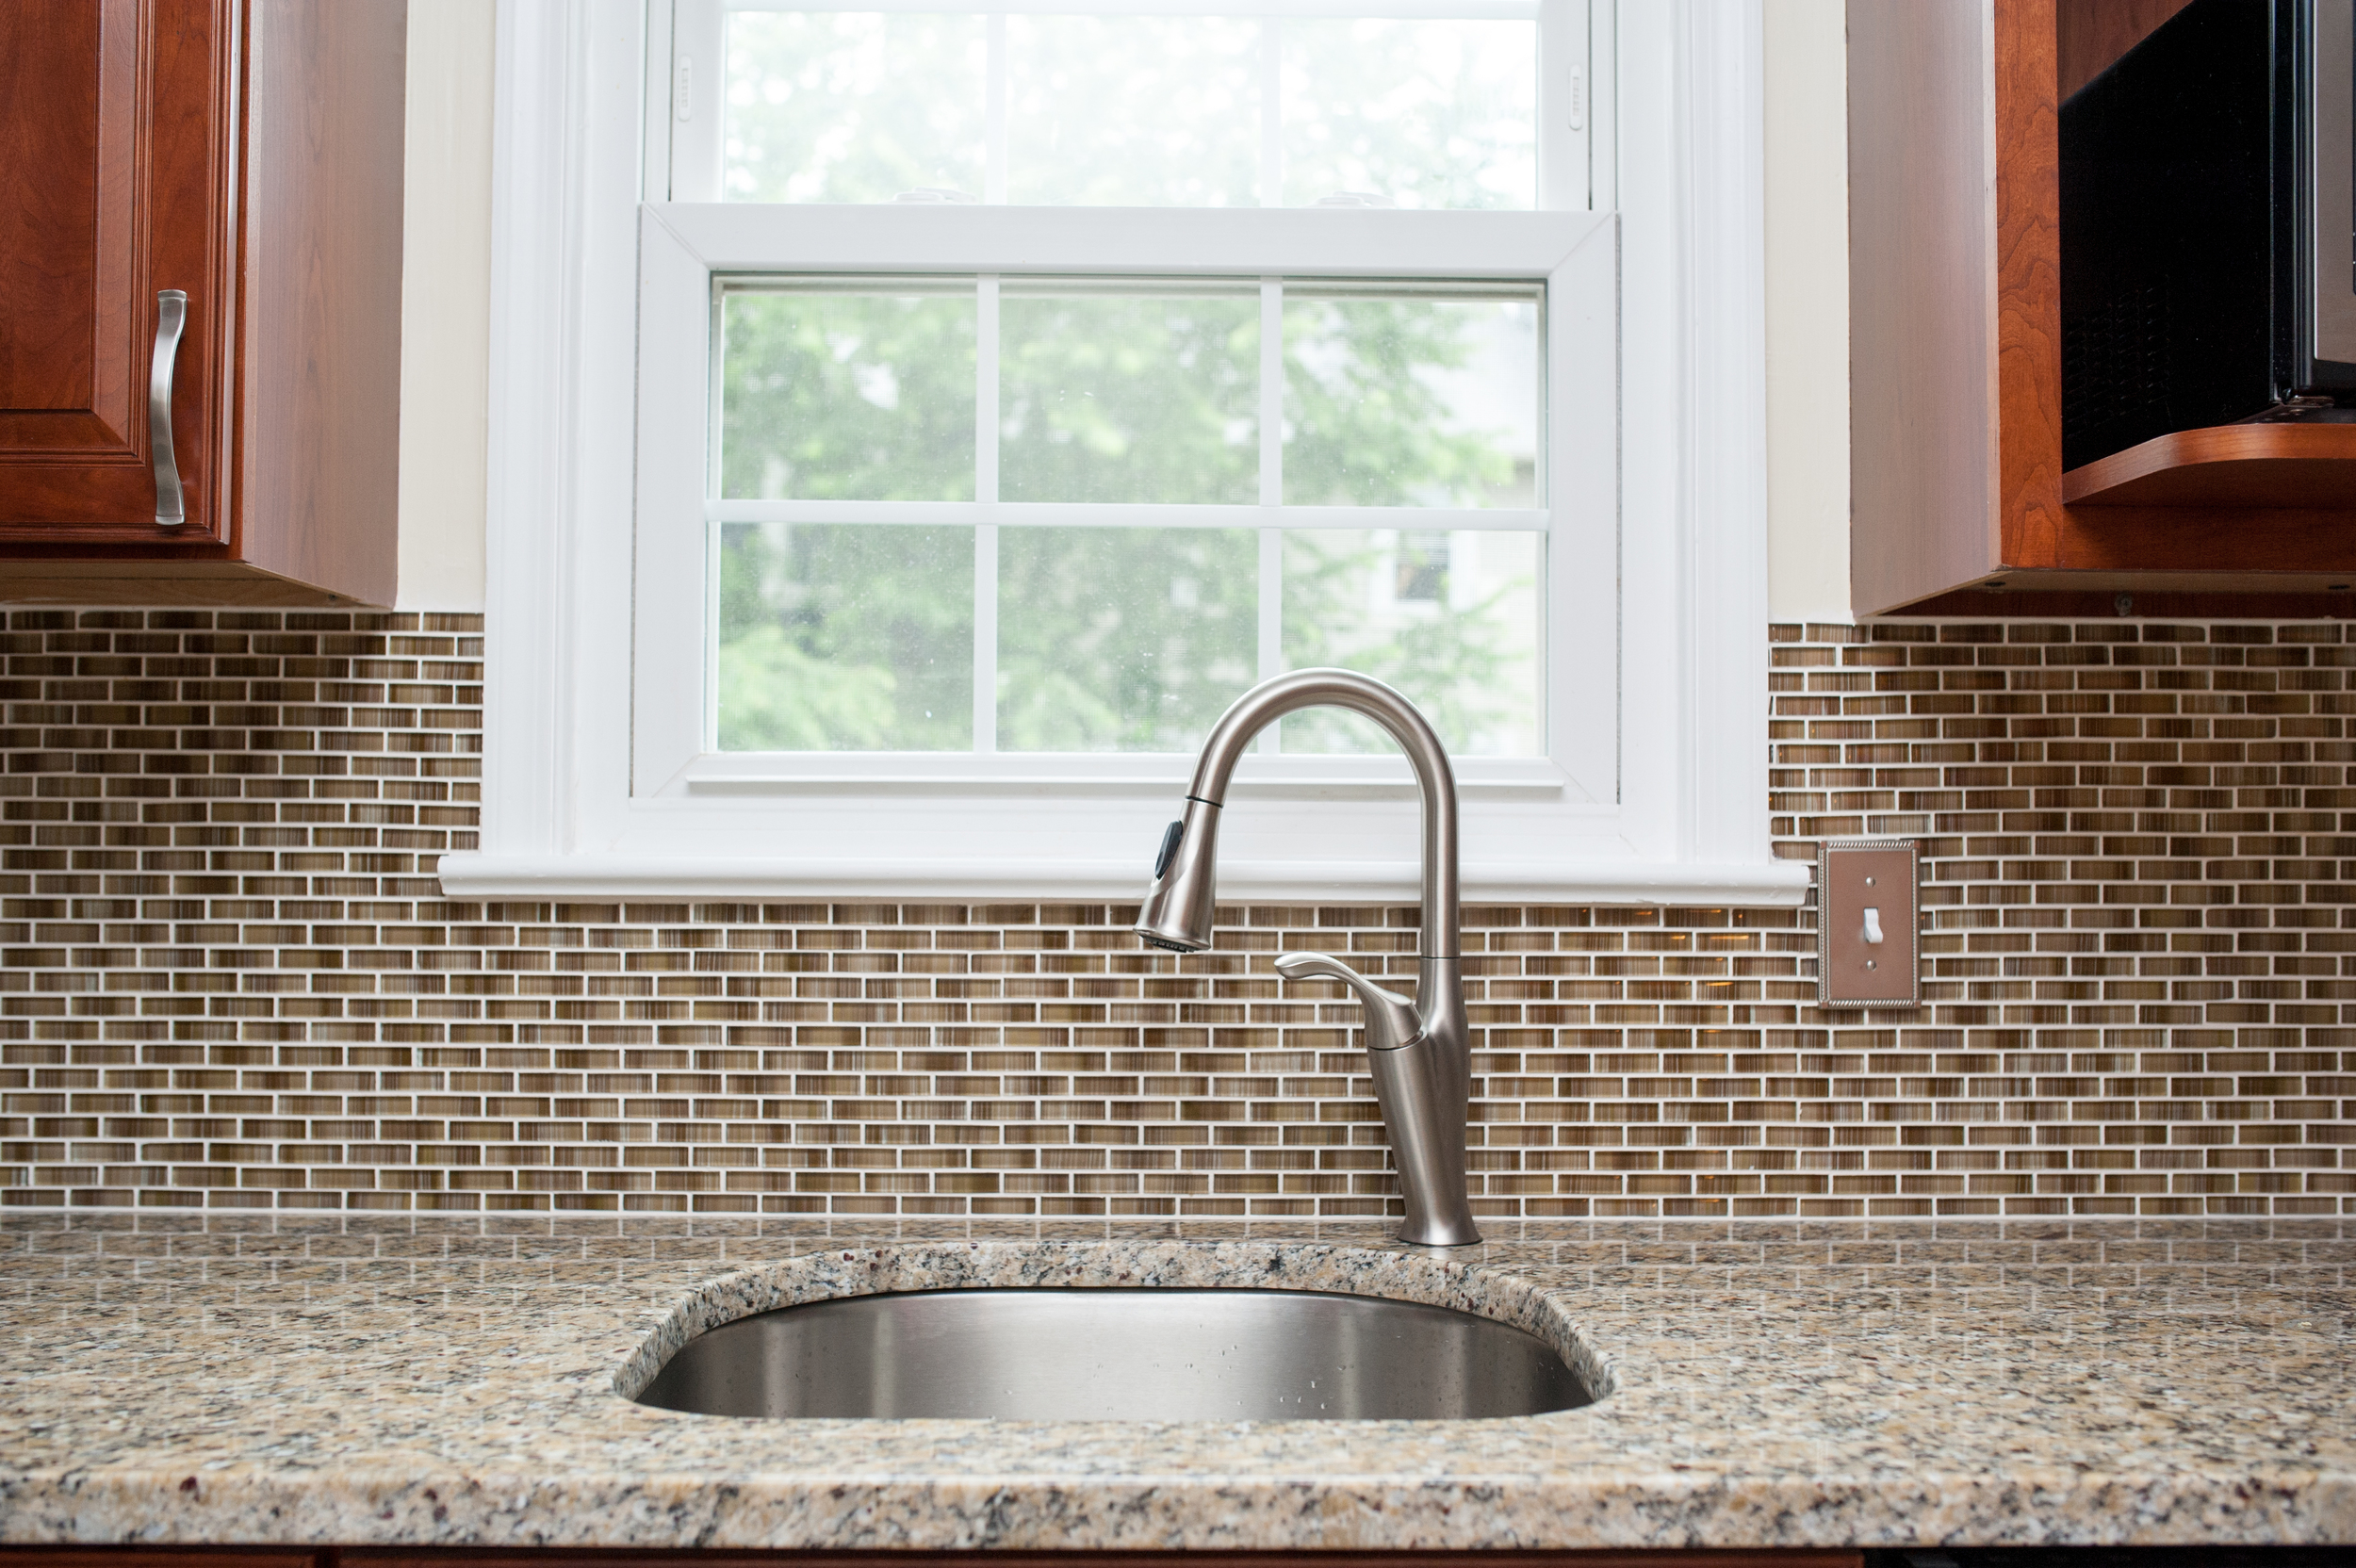 kitchen remodeling silver spring md stone backsplash services gallery euro design remodel